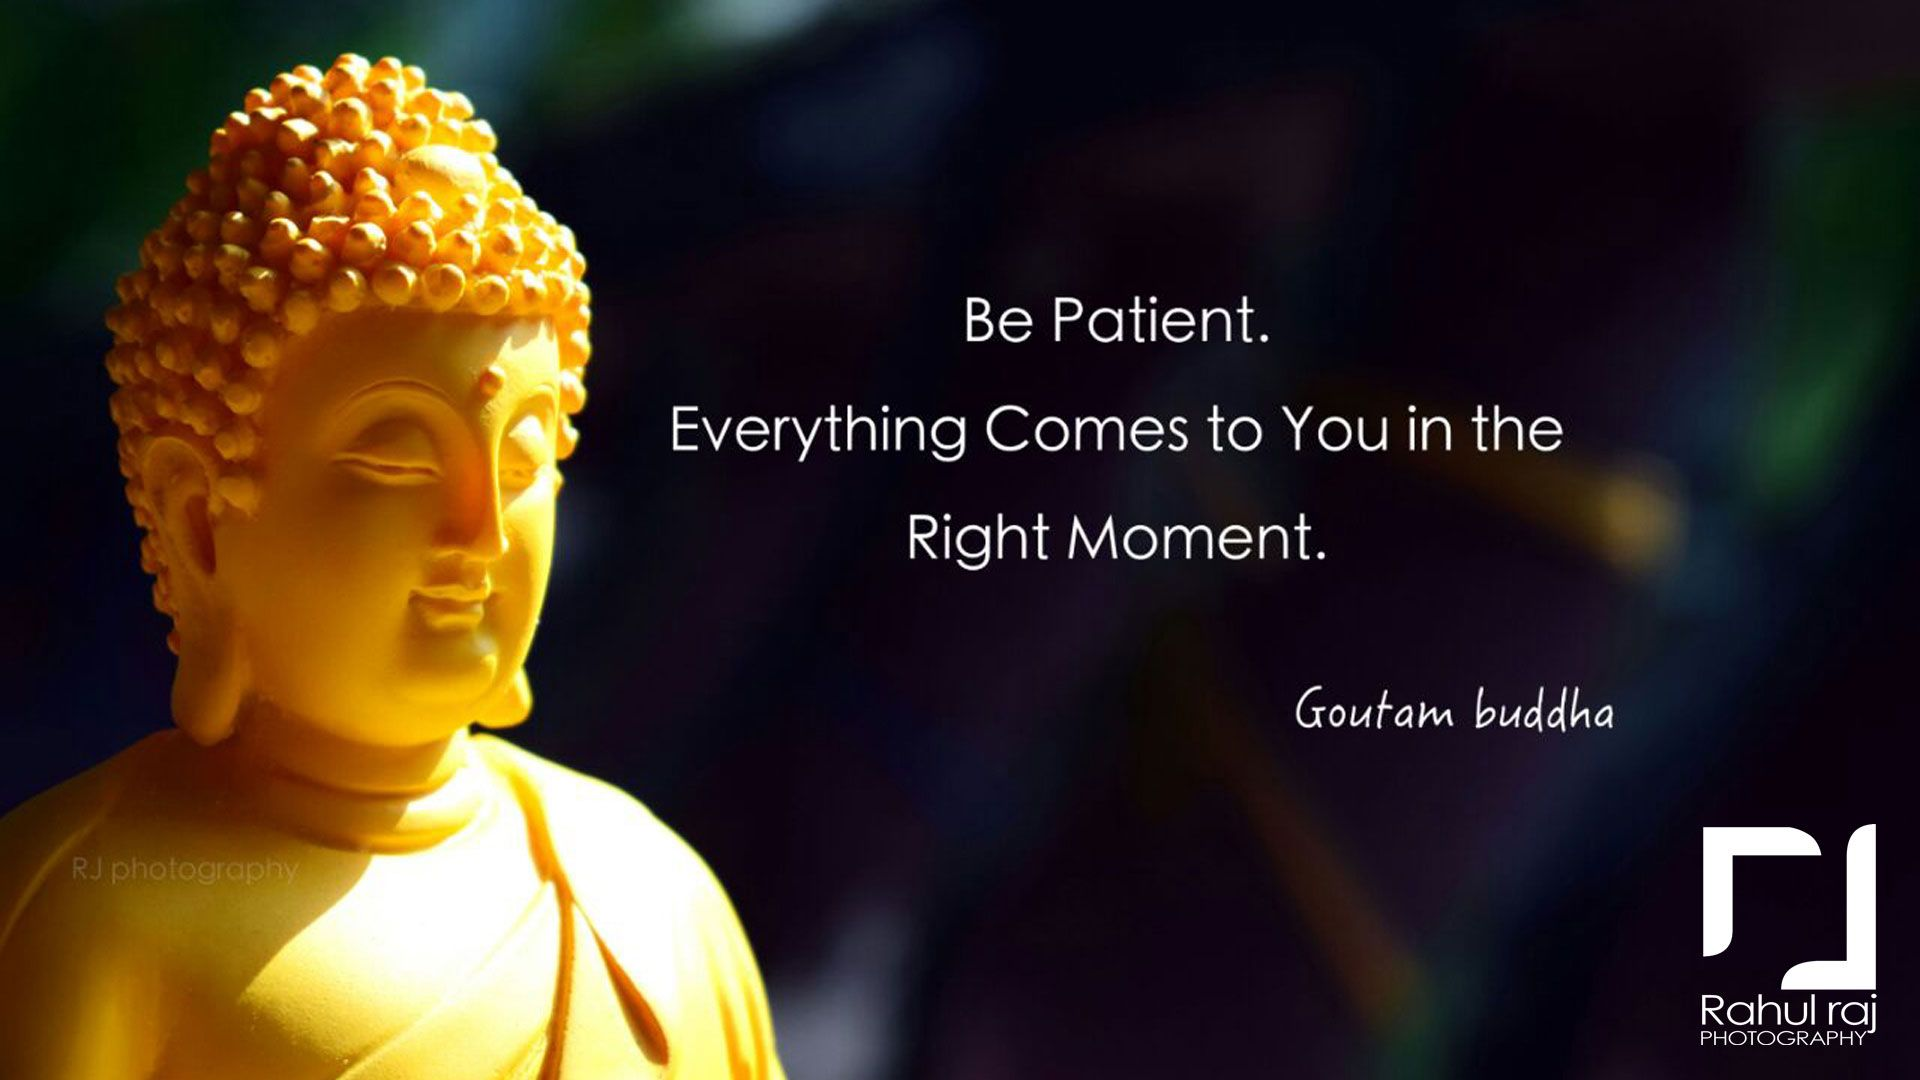 STUNNING ATTRACTIVE BUDDHA QUOTES RAHUL RAJ RJ PHOTOGRAPHY